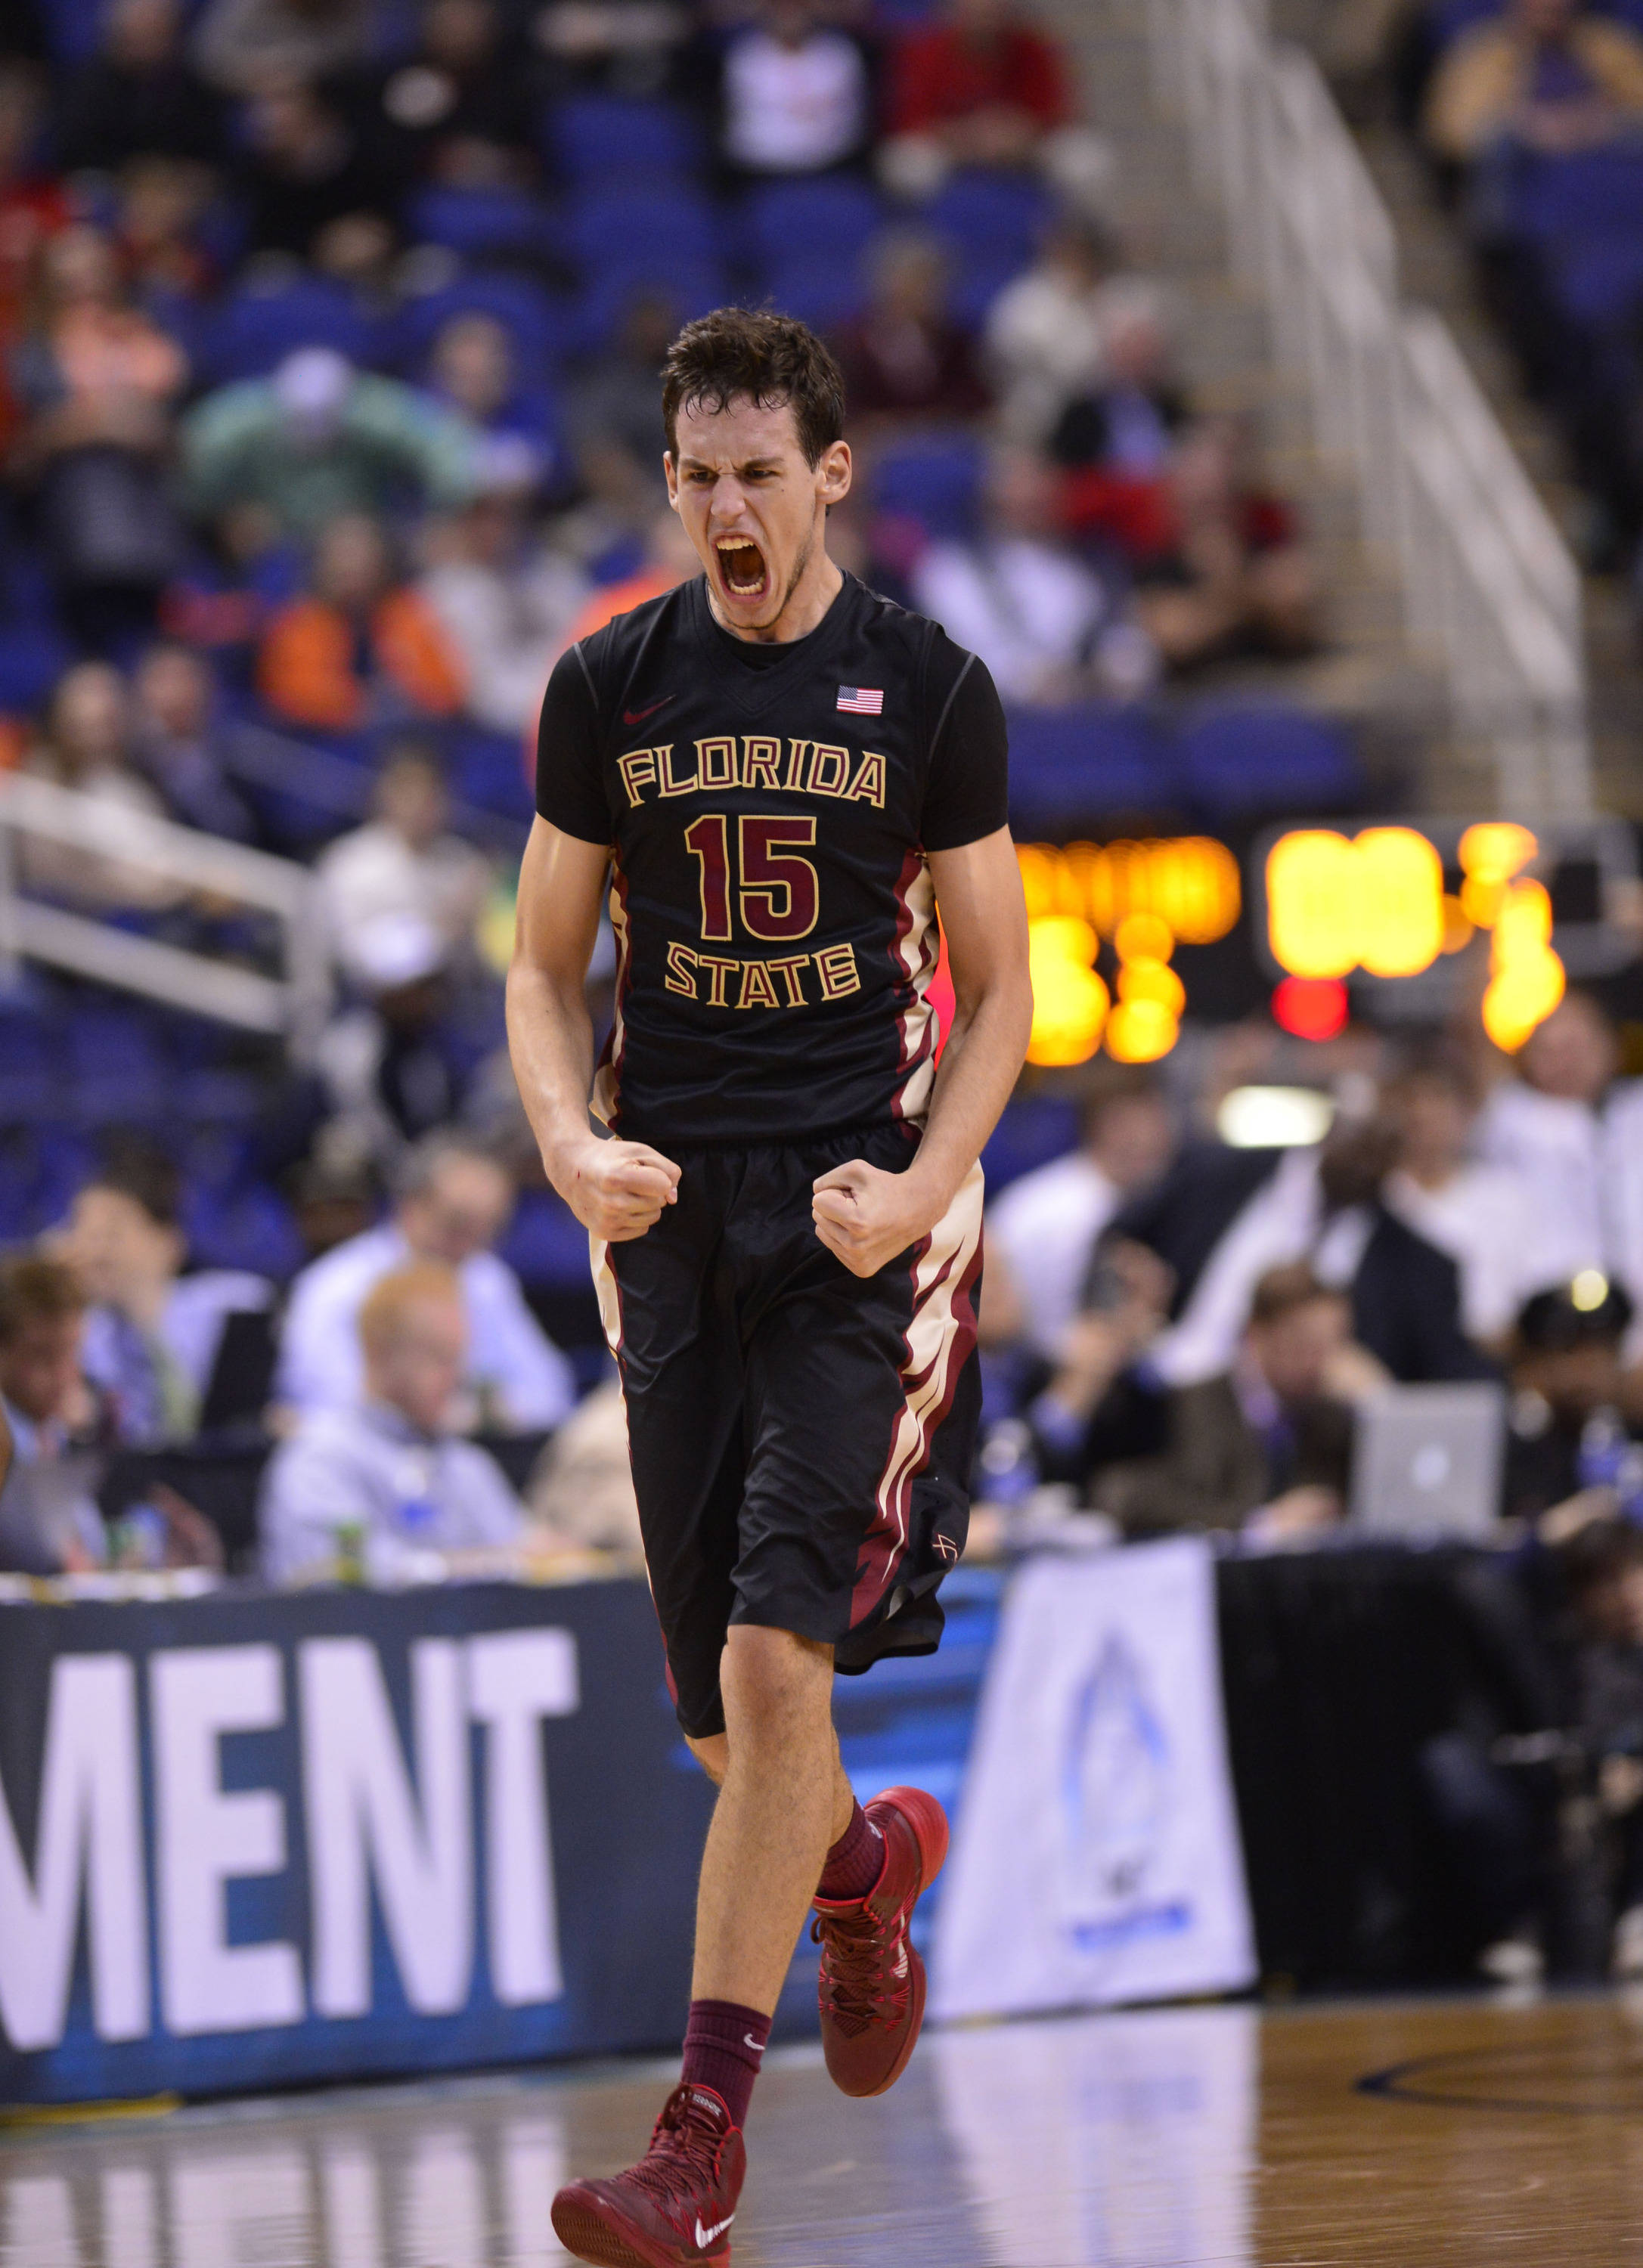 Florida State Seminoles center Boris Bojanovsky (15) reacts after hitting the game winning shot. The Seminoles defeated the Terrapins 67-65 in the second round of the ACC college basketball tournament at Greensboro Coliseum. Mandatory Credit: Bob Donnan-USA TODAY Sports